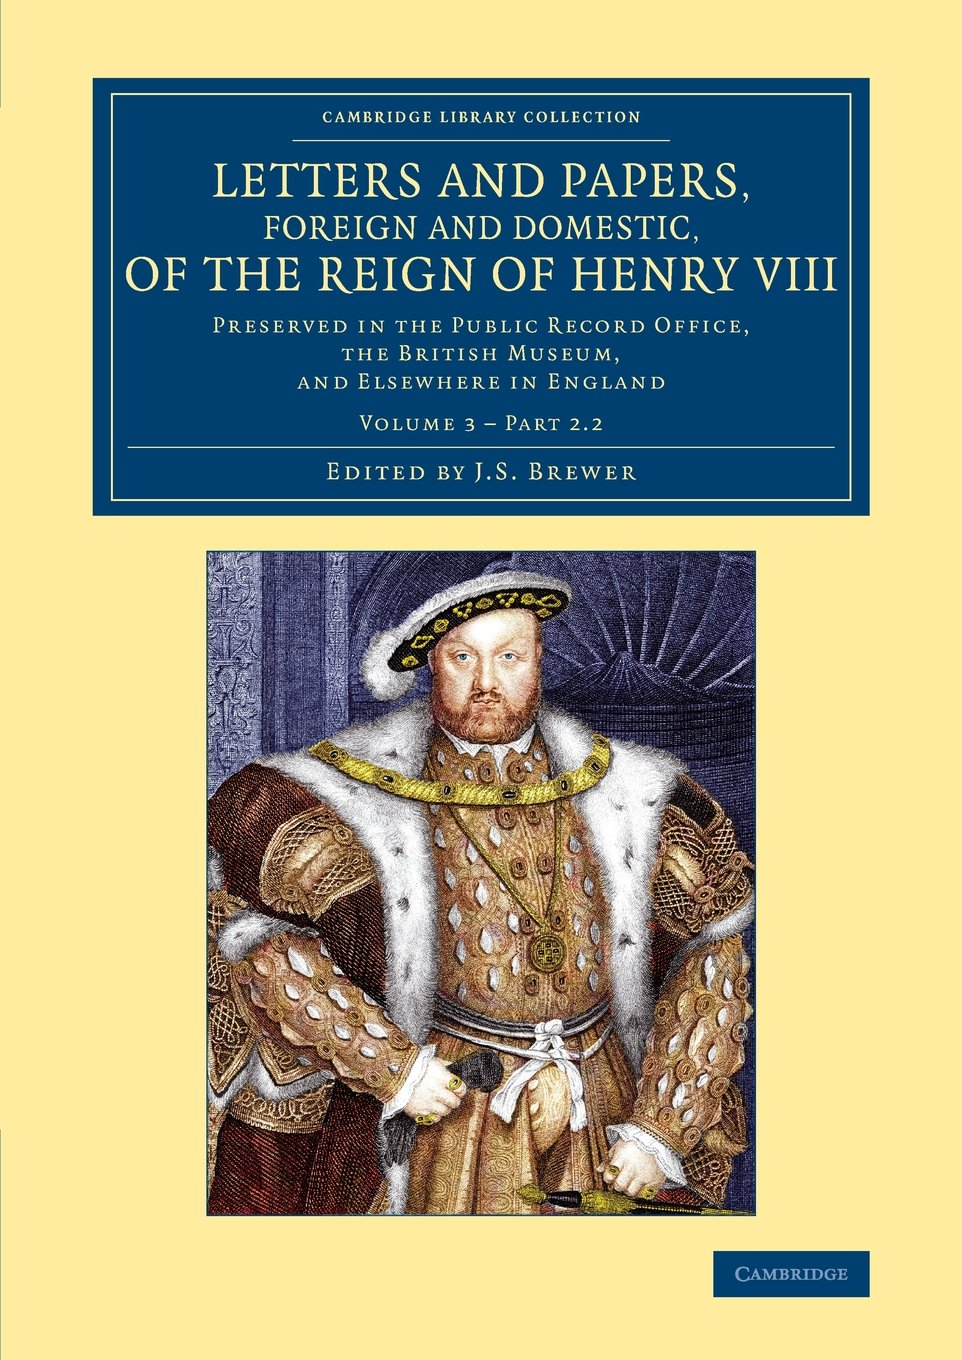 Download Letters and Papers, Foreign and Domestic, of the Reign of Henry VIII: Volume 3, Part 2.2: Preserved in the Public Record Office, the British Museum, ... and Irish History, 15th & 16th Centuries) pdf epub